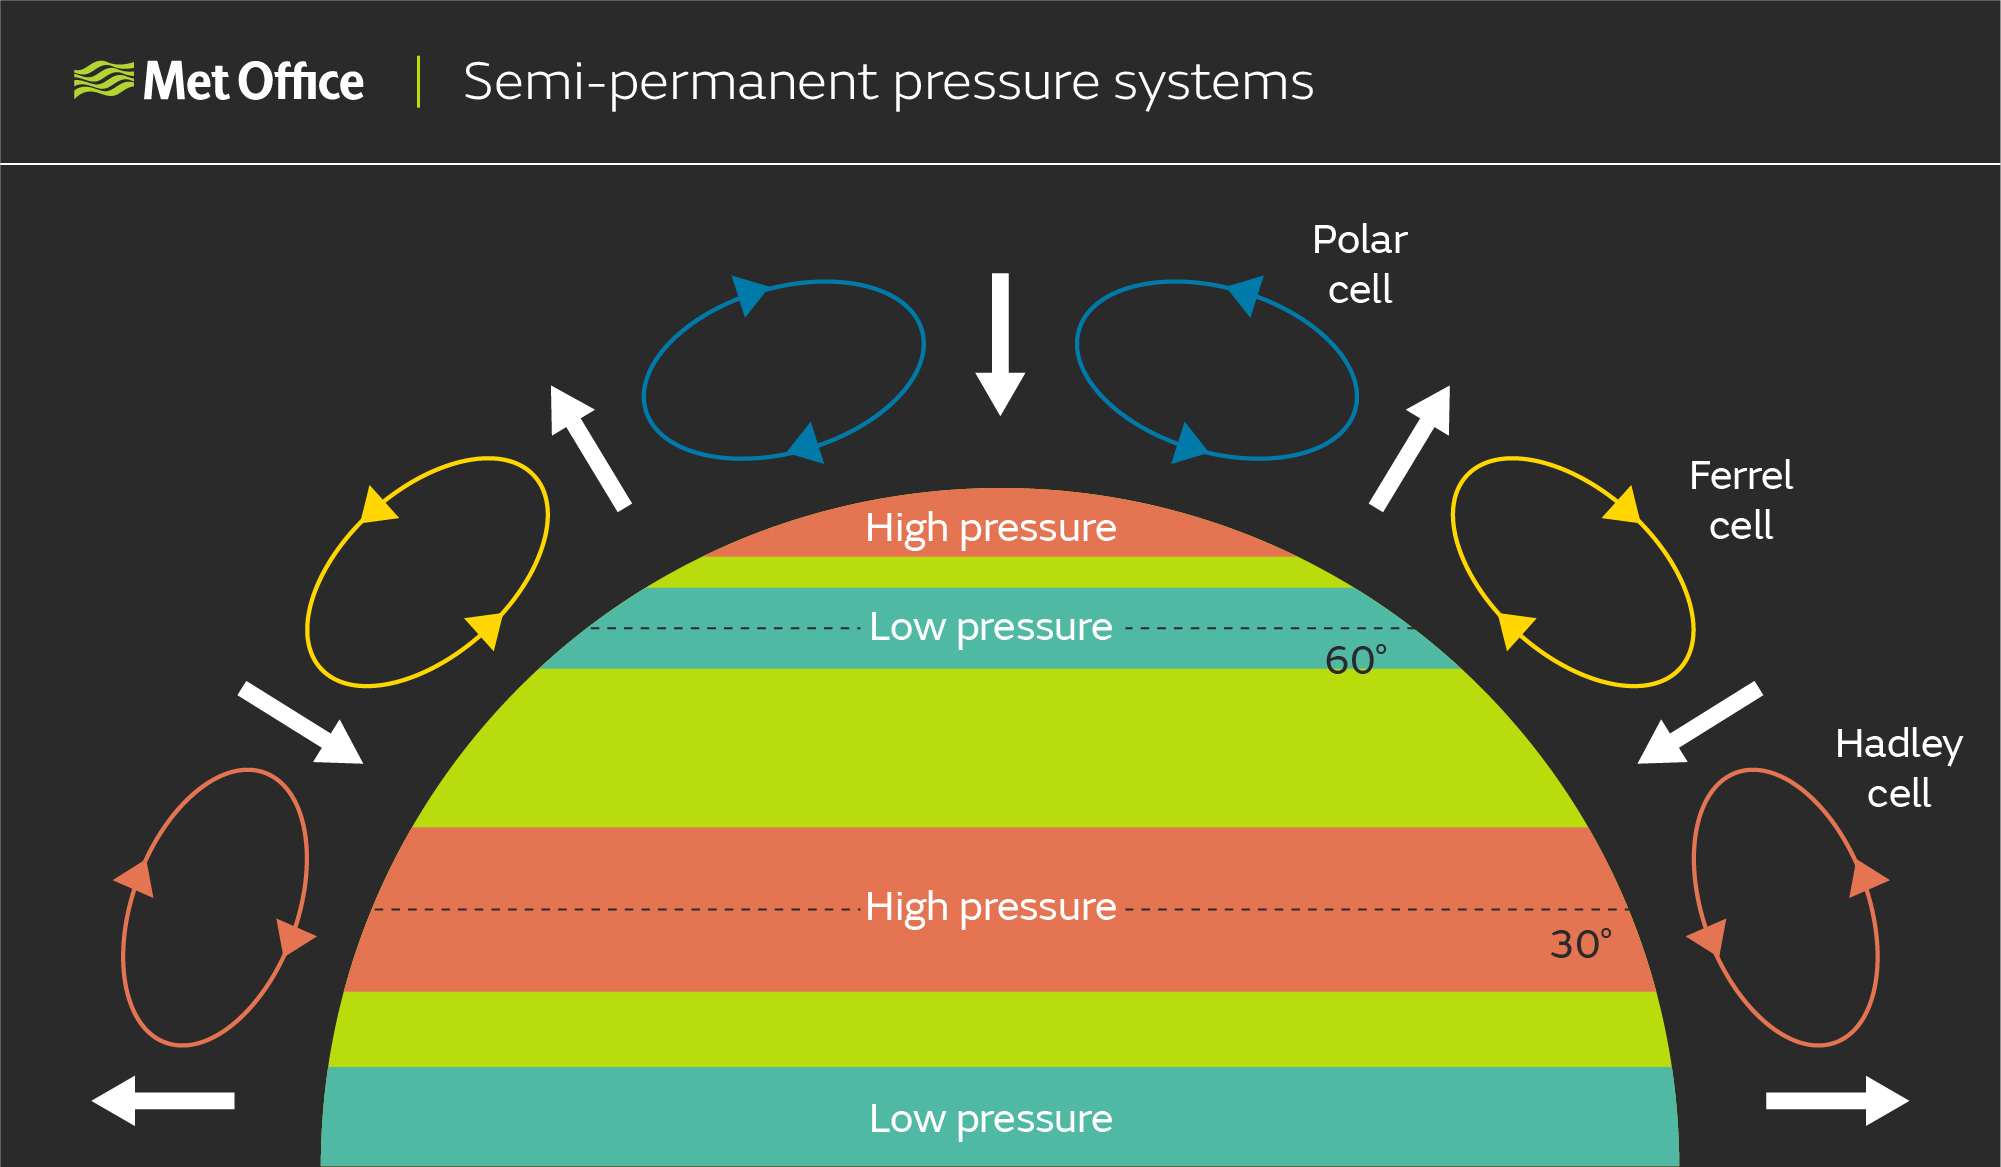 Semi-permanent pressure systems: Diagram showing the northern hemisphere, with bands of high or low pressure running around the Earth due to the rising and sinking air as a result of the circulation cells, which are also shown. Rising air at the equator leads to a low pressure zone, sinking air where the Hadley and Ferrel cells meet leads to a high pressure zone, rising air where the Ferrel and polar cells meet leads to a low pressure zone and sinking air at the North Pole leads to a high pressure zone.